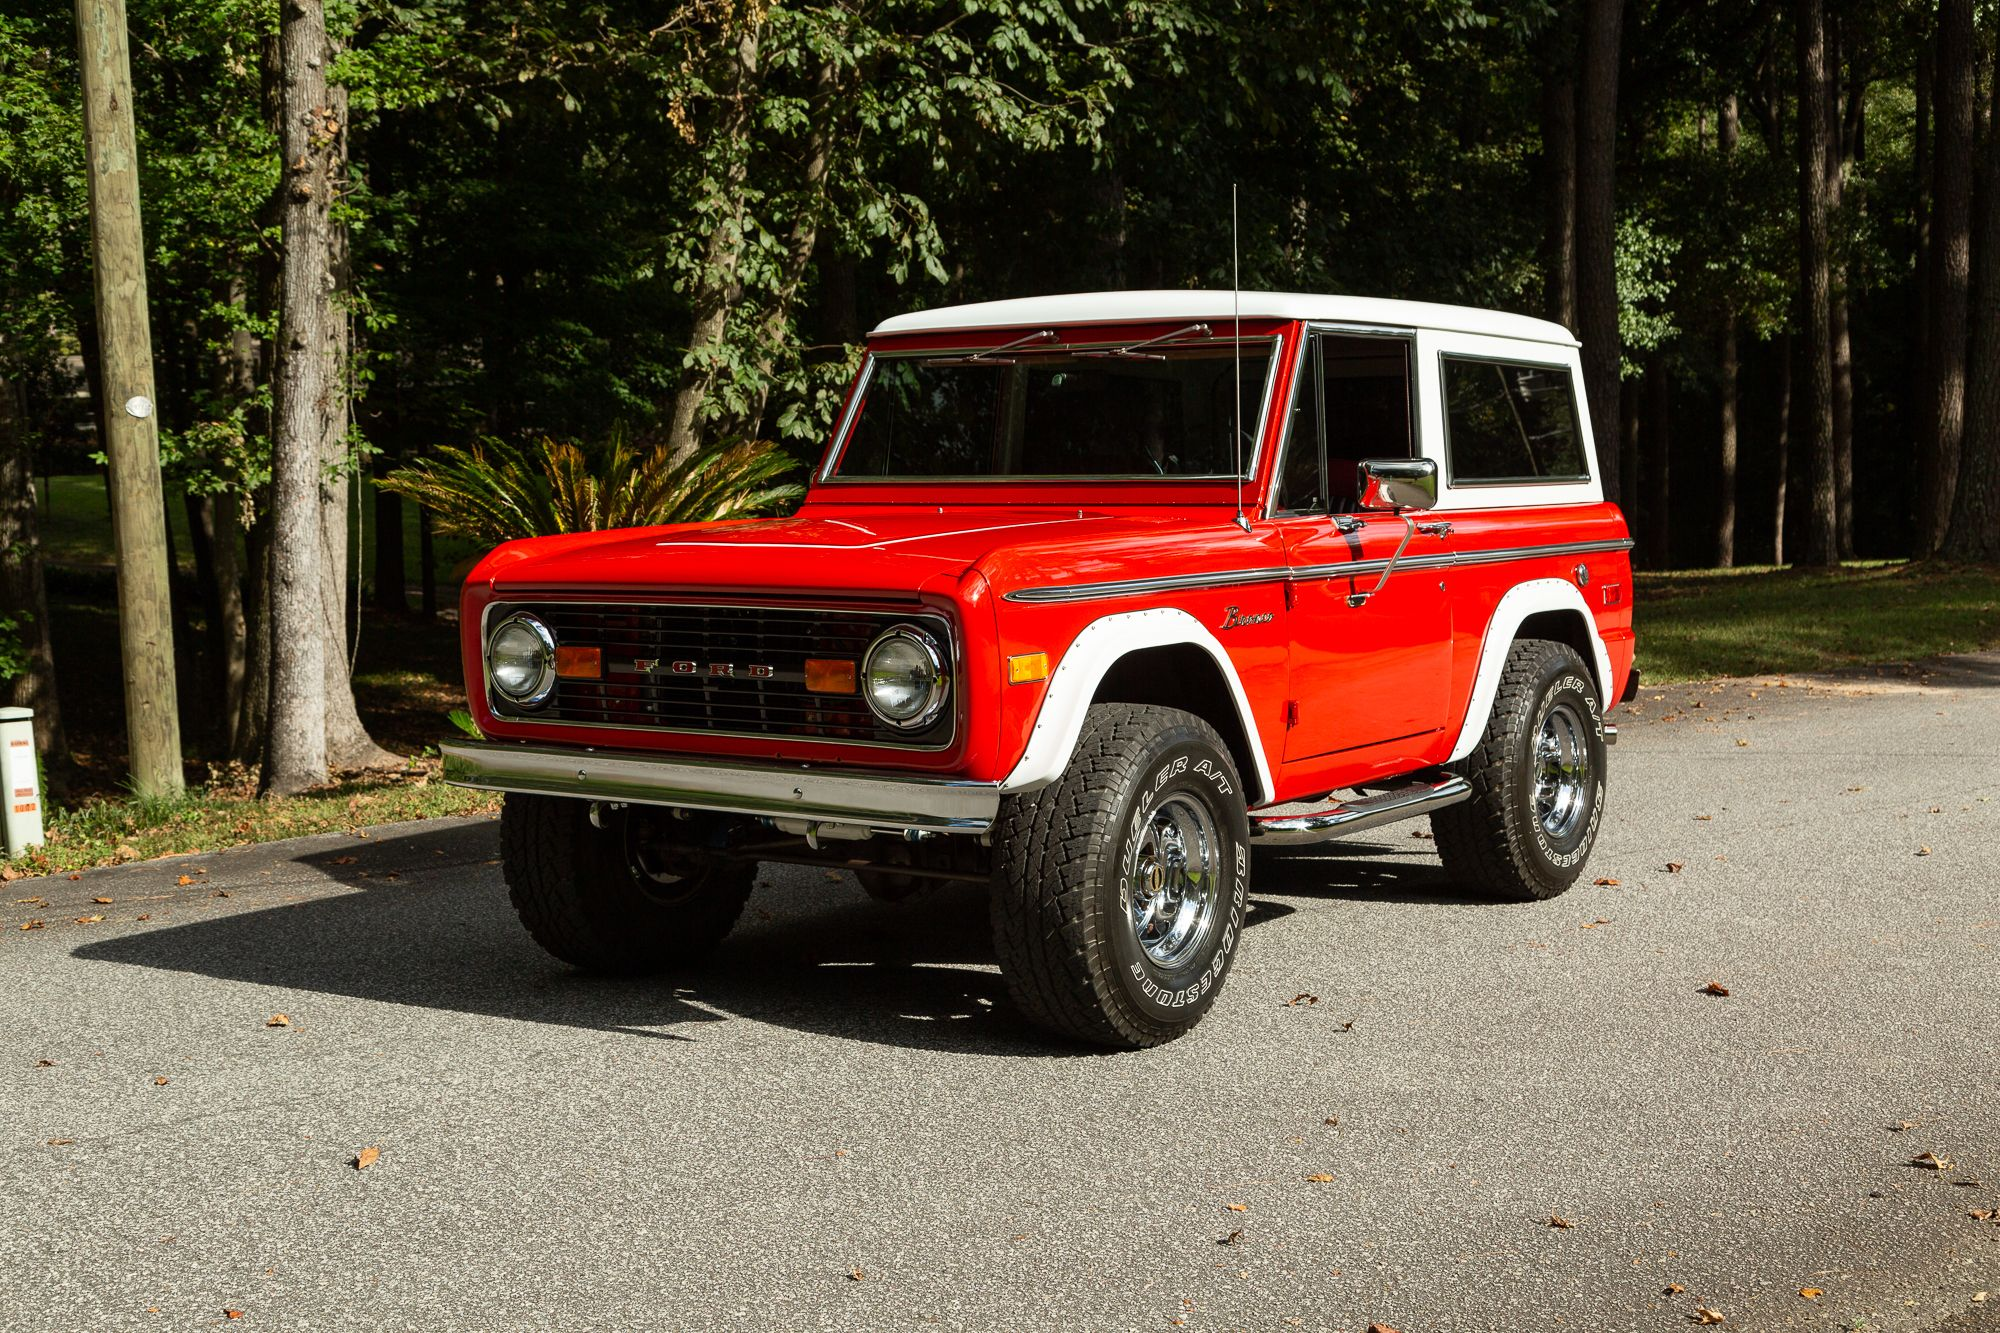 1974 Ford Bronco Red With White Top And Flares 33 12 50 X 15 X 10 Wide Wheels Ford Bronco Classic Bronco Old Bronco